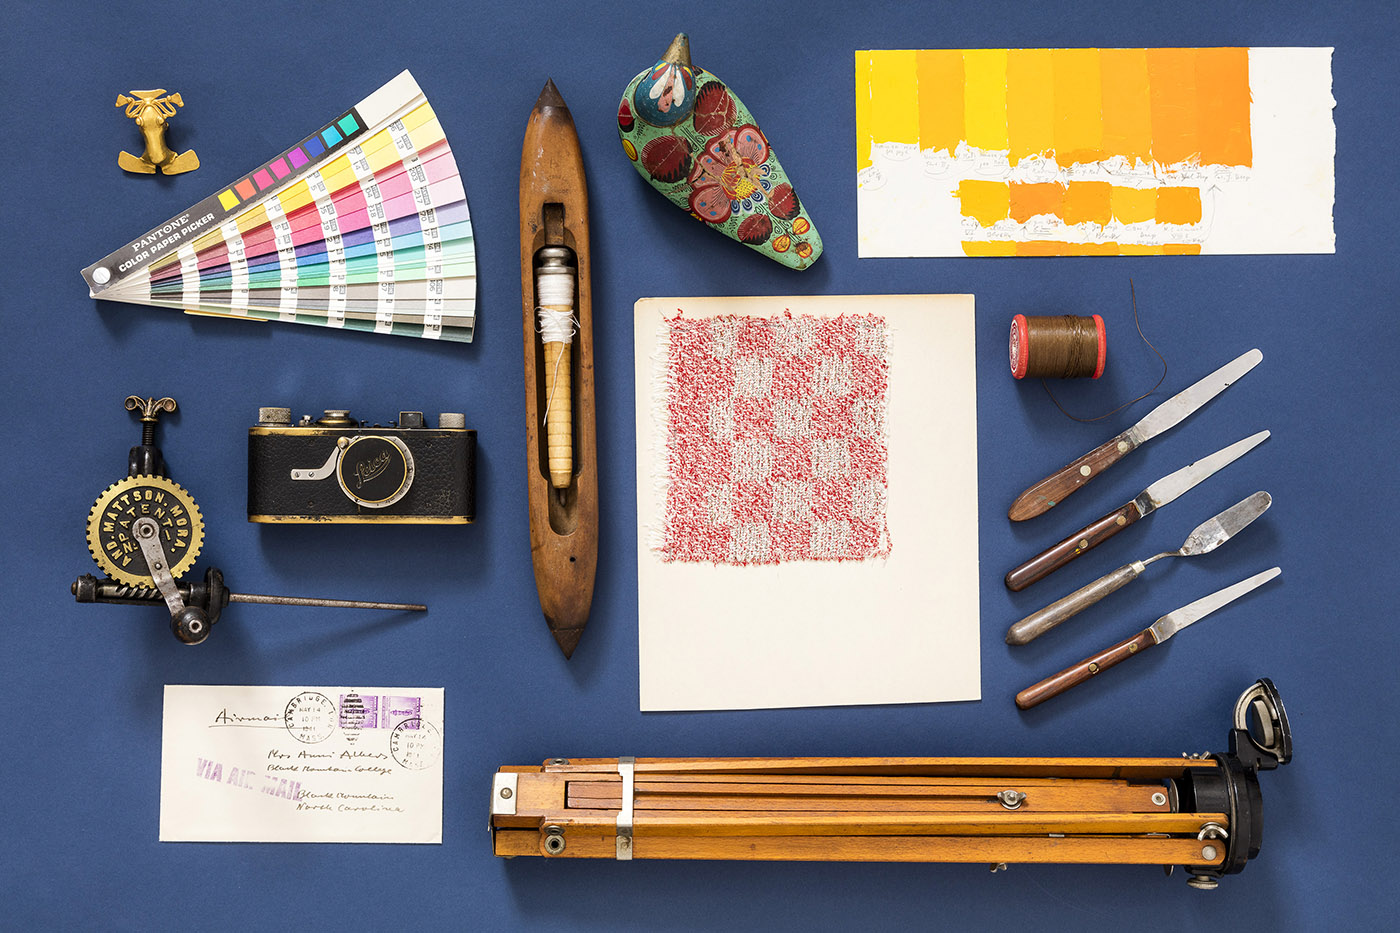 Artifacts from The Josef and Anni Albers Foundation.